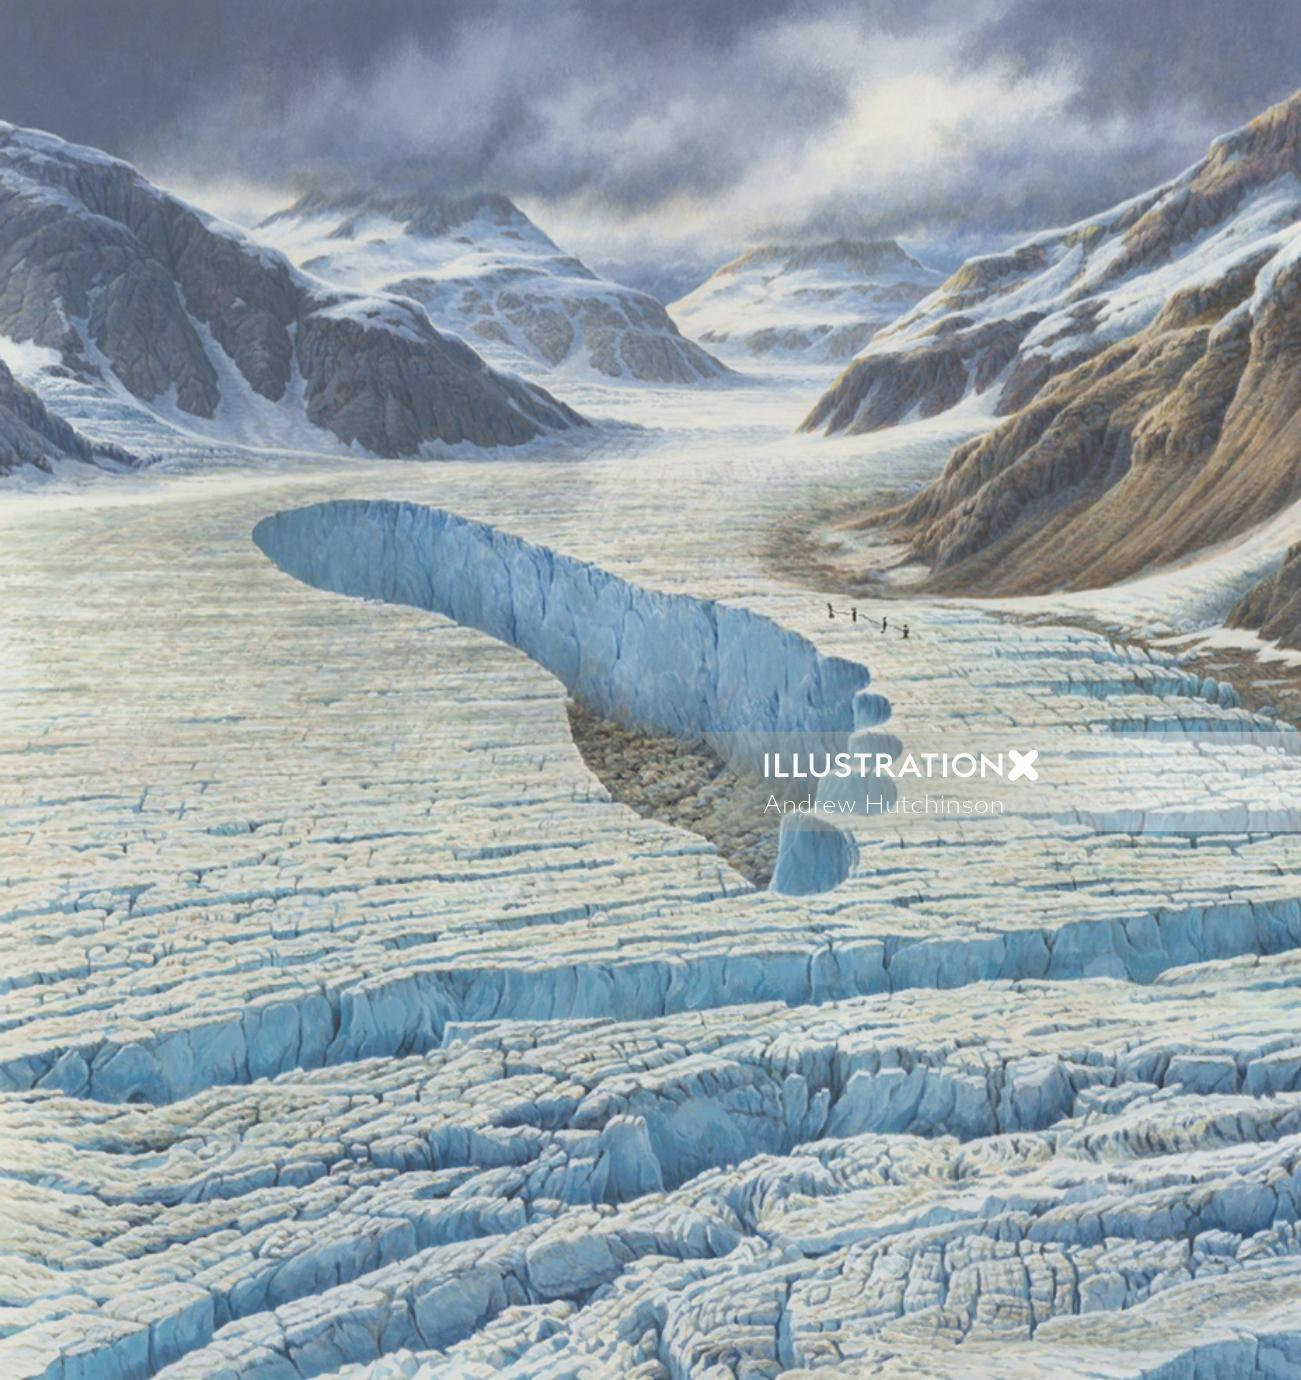 Carbon footprint illustration, environment images © Andrew Hutchinson